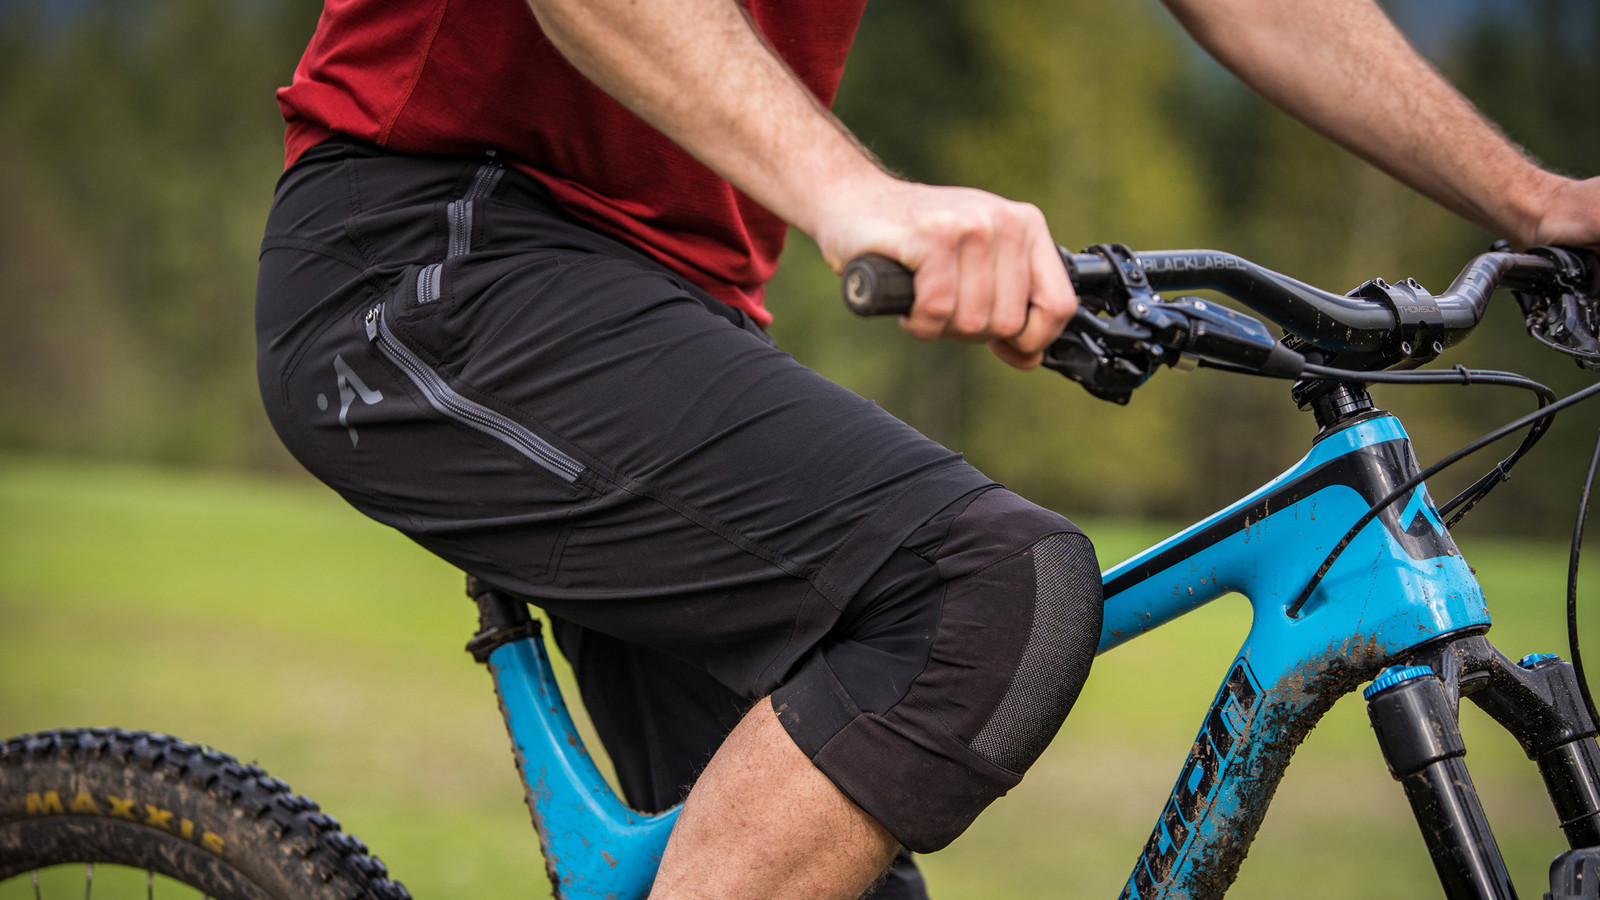 Introducing Abit Gear's Updated MTN Shorts